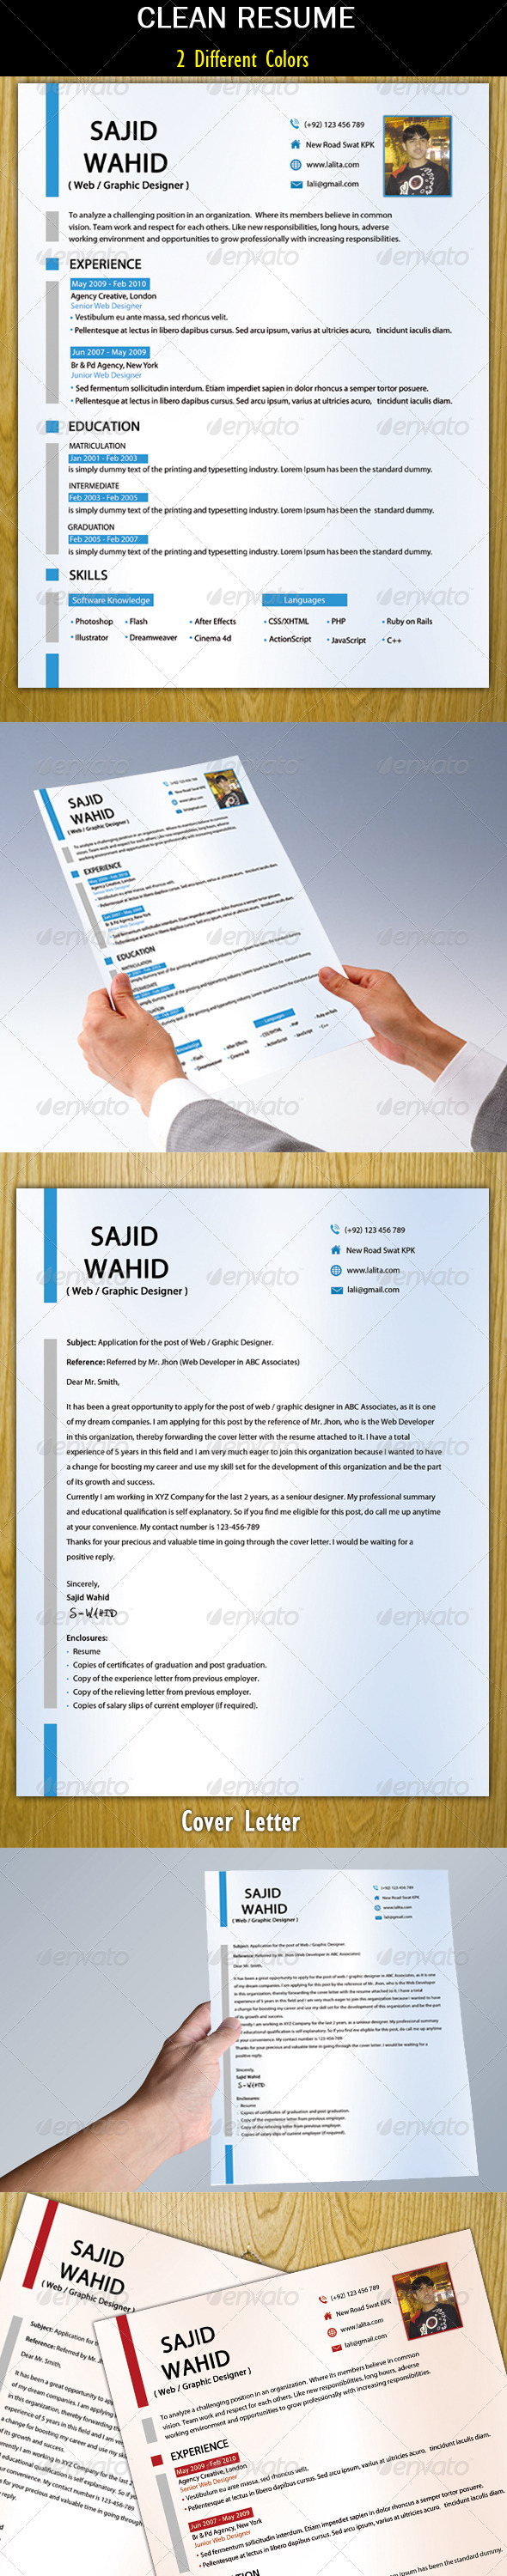 GraphicRiver Clean Resume & Cover Letter 5220095